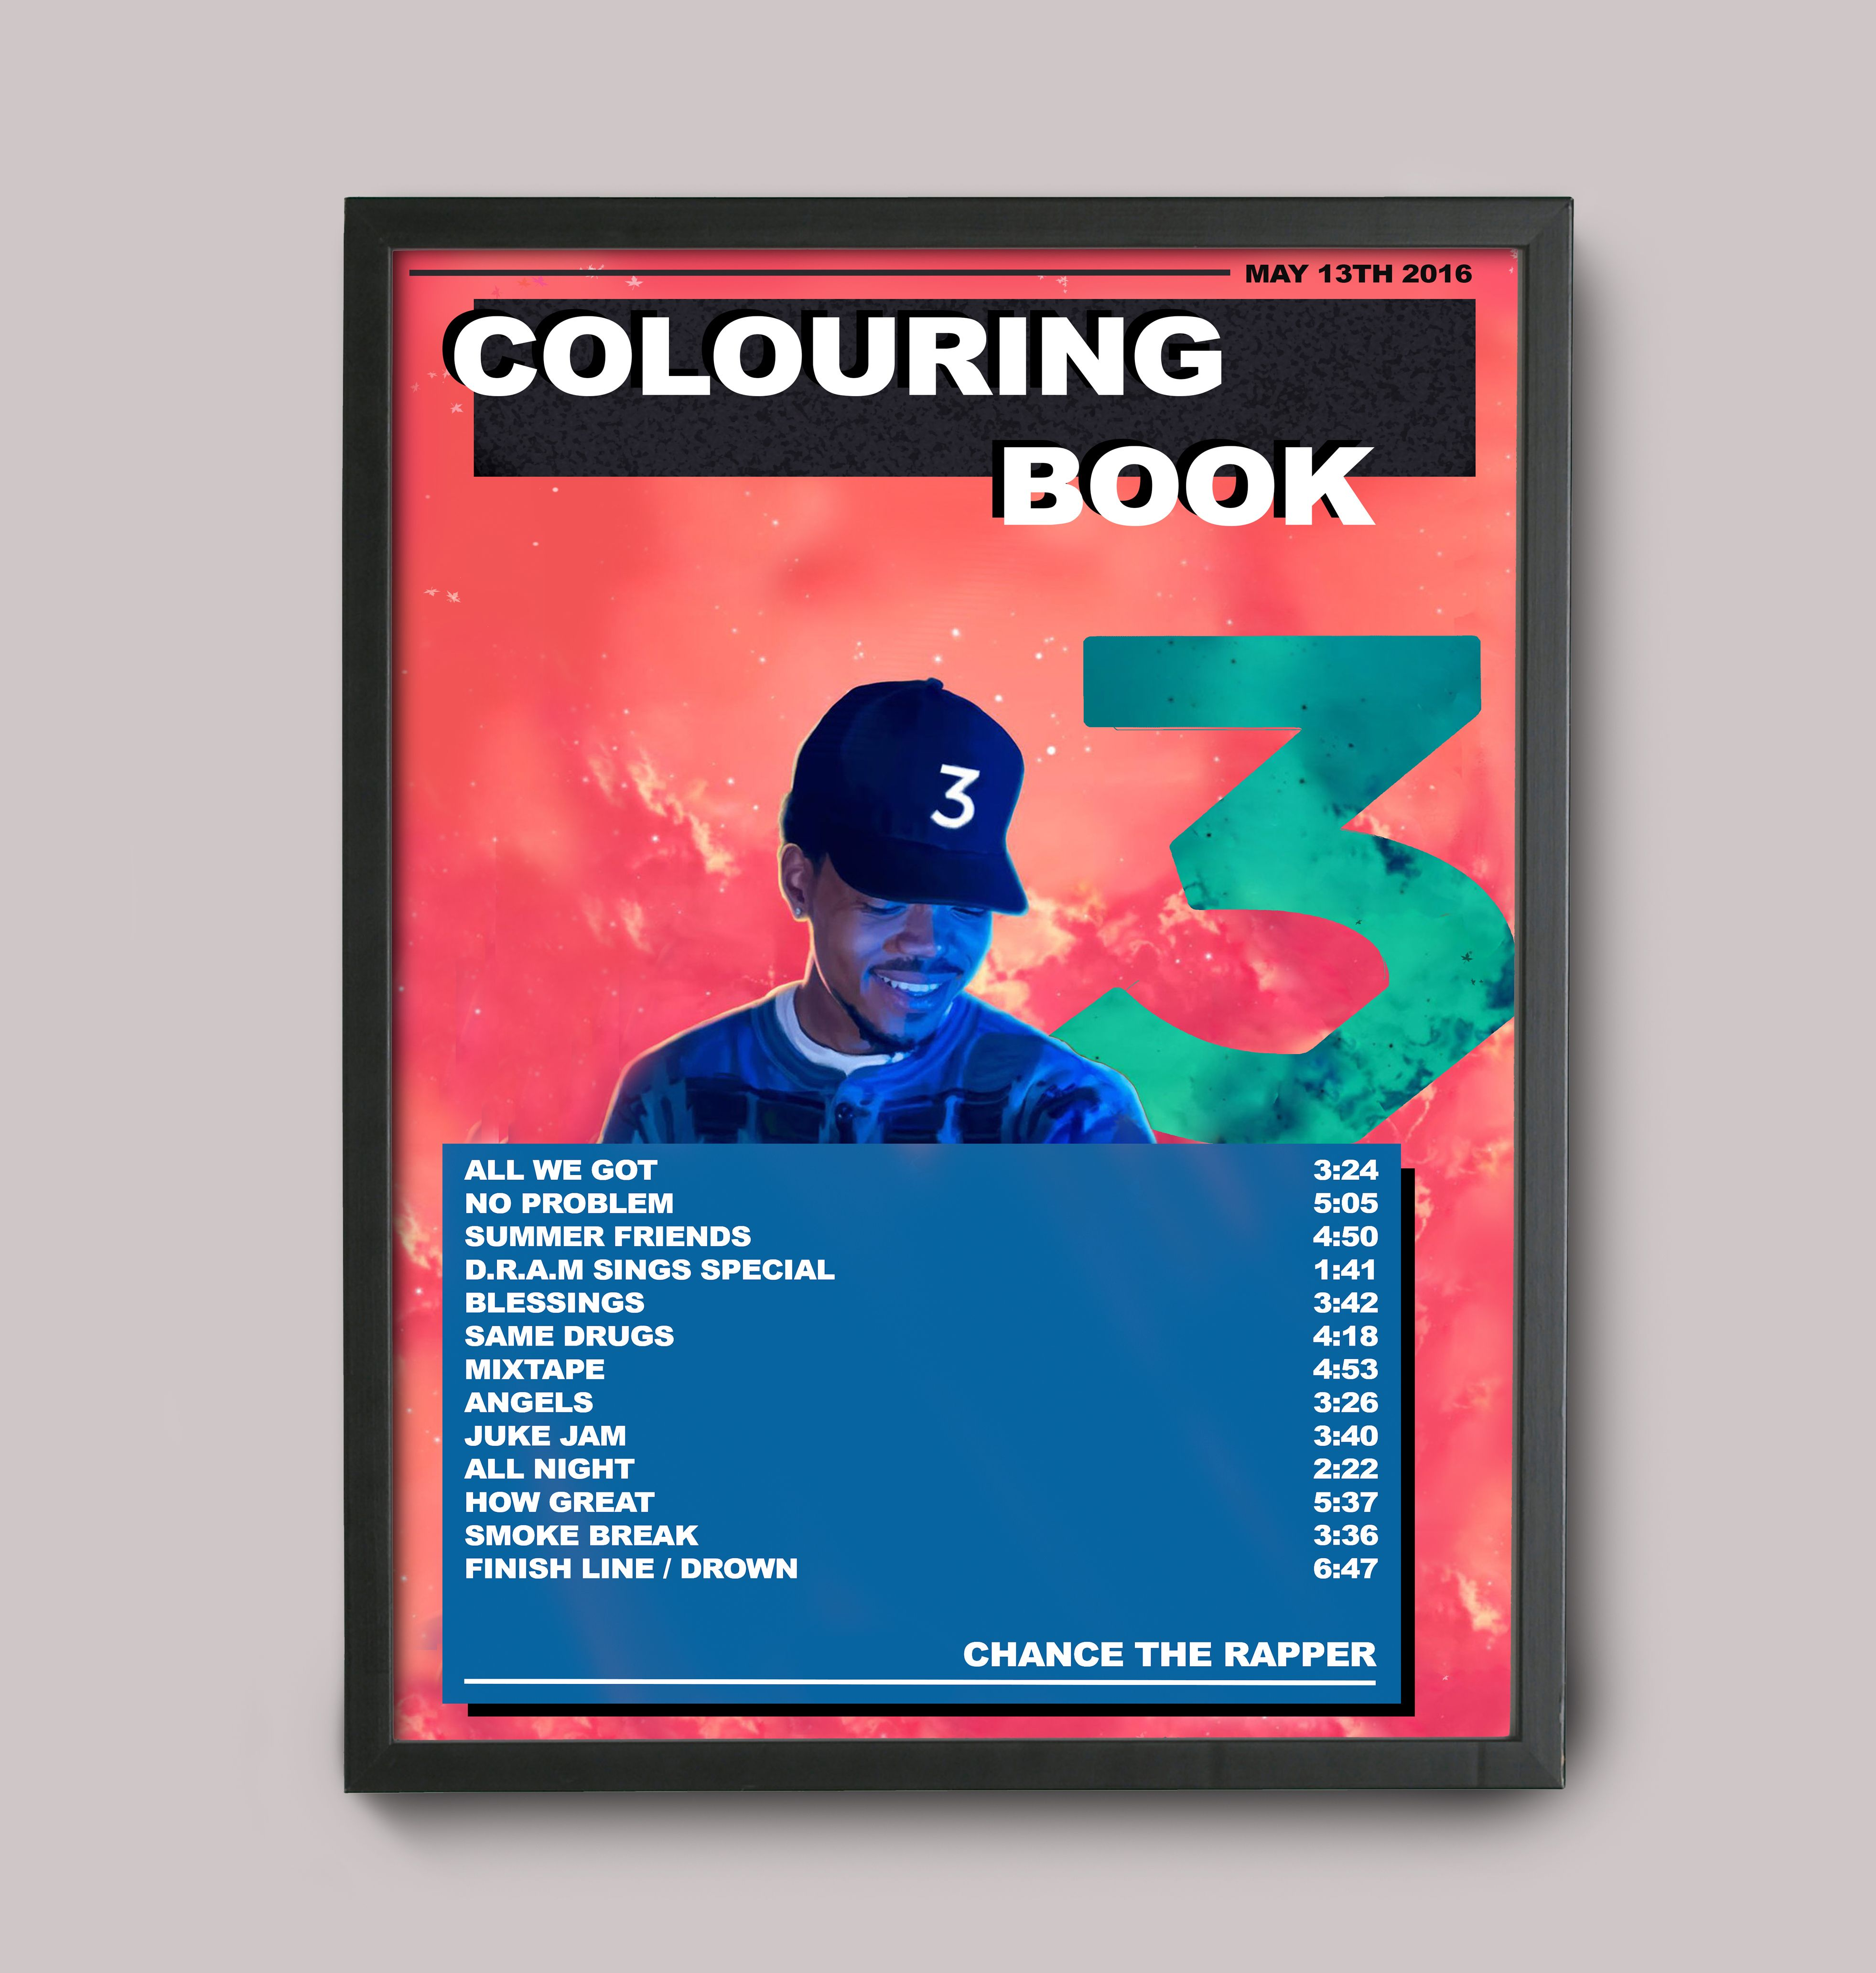 Chance The Rapper Colouring Book Custom Poster Coloring Book Album